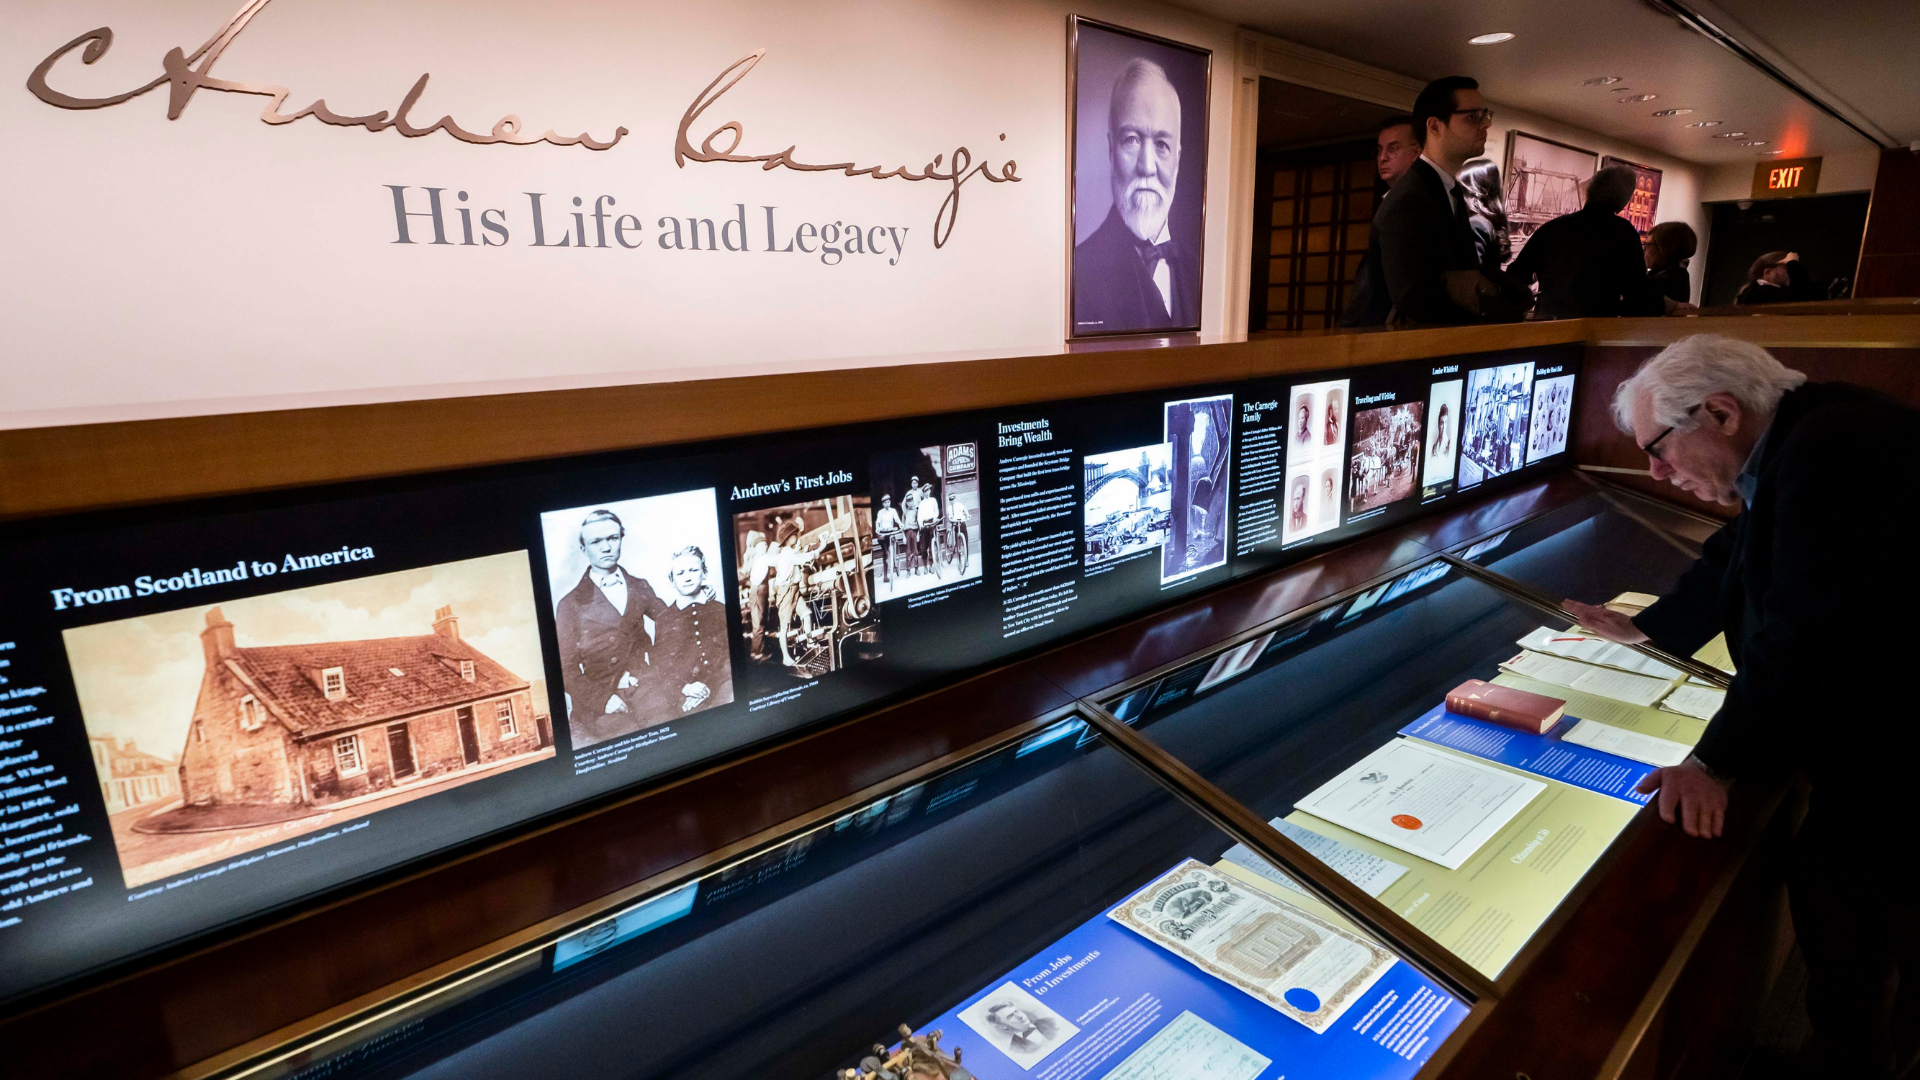 Andrew Carnegie: His Life and Legacy